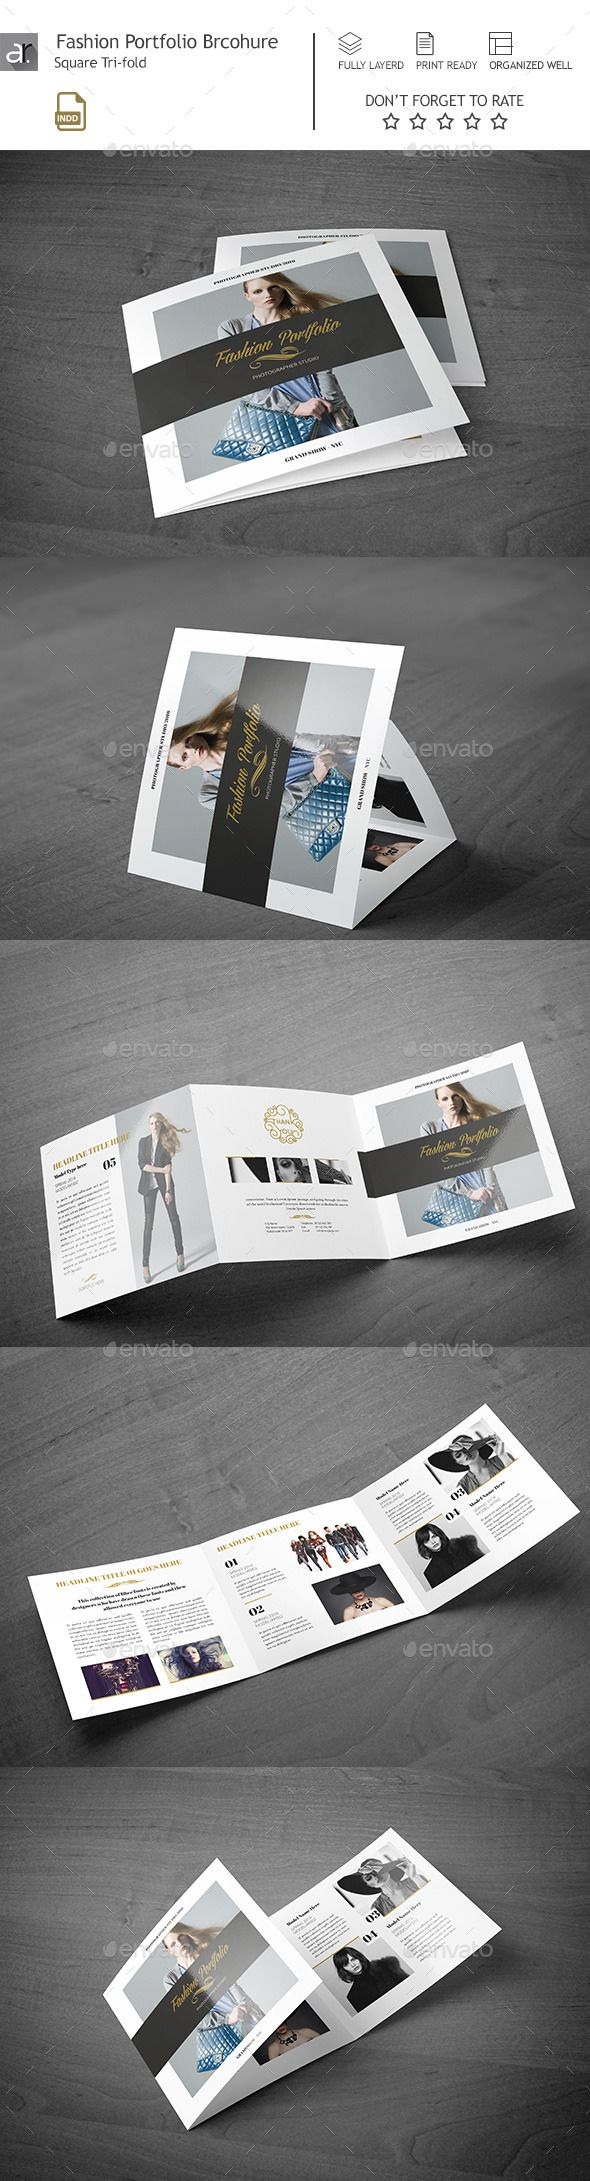 Fashion Portfolio Square Brochure Template PSD #design Download: http://graphicriver.net/item/fashion-portfolio-square-brochure/13684087?ref=ksioks